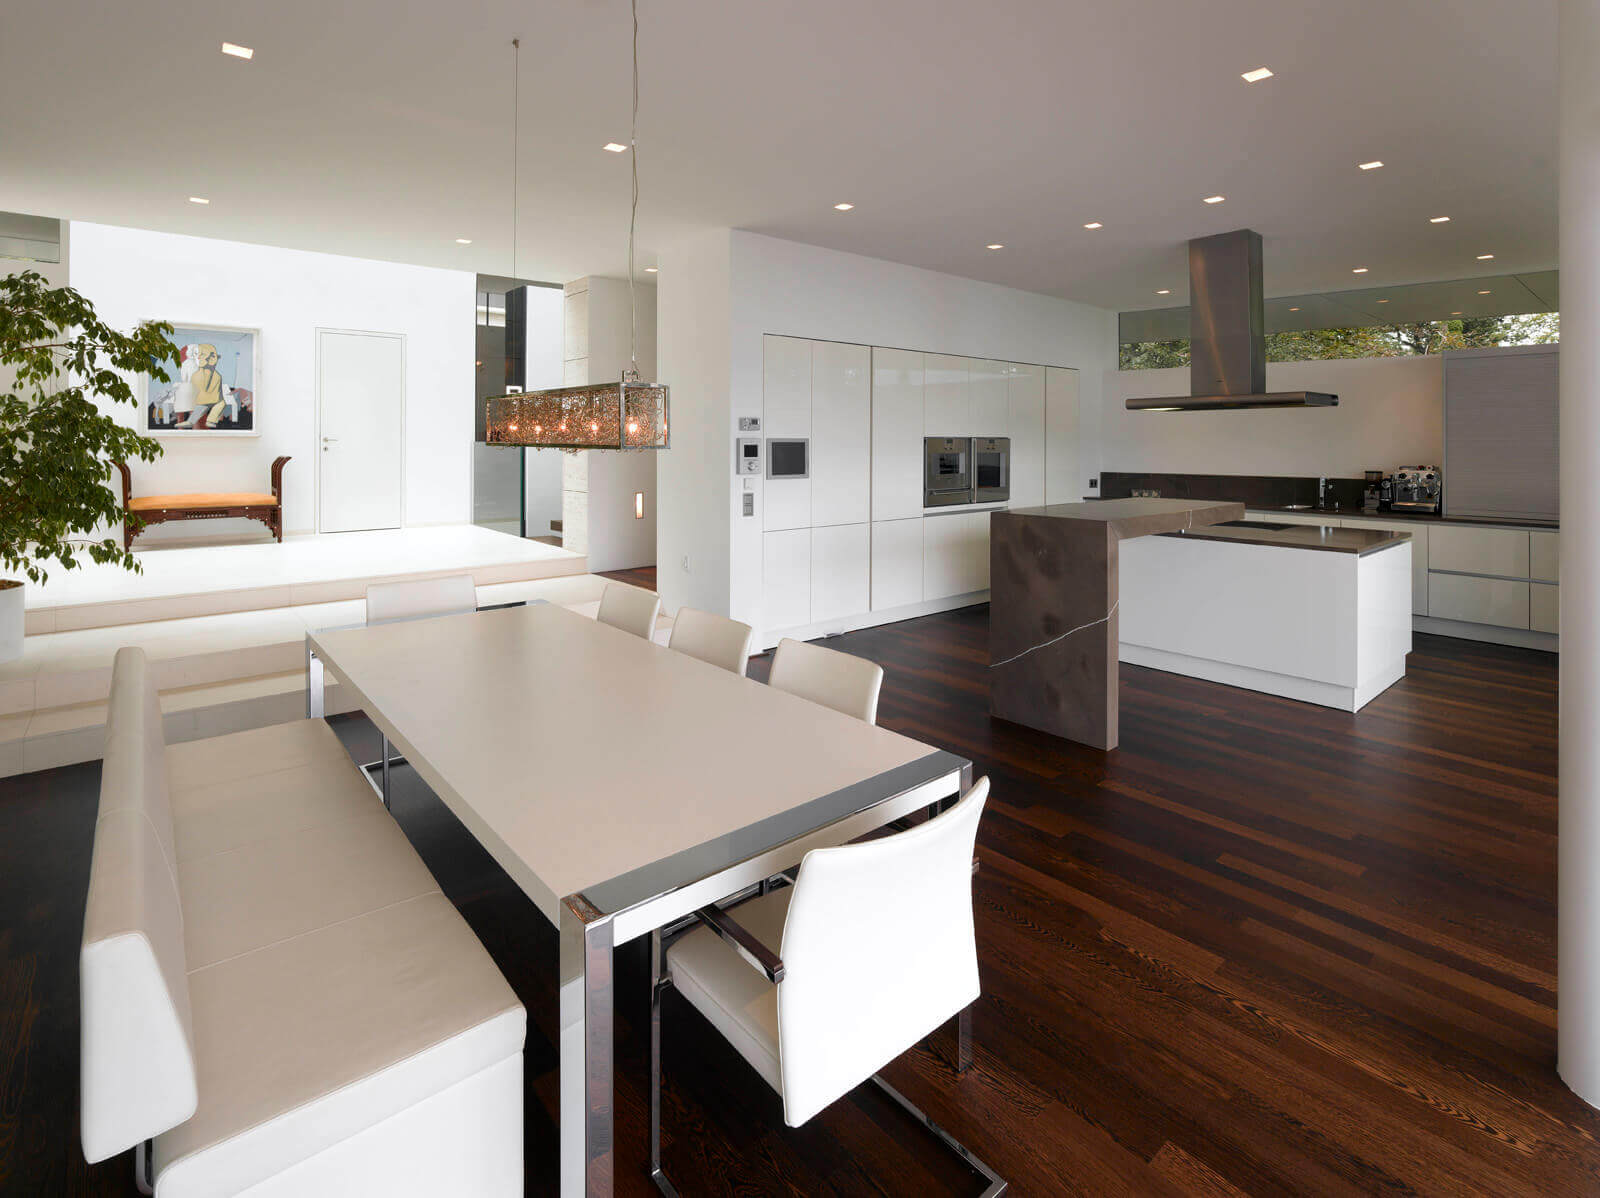 Contemporary kitchen family room ideas is now trendy for those who want a relaxing place for their family while the next meal is prepped. The dark wooden floor harmonizes perfectly the white armless sofa and walls of this kitchen